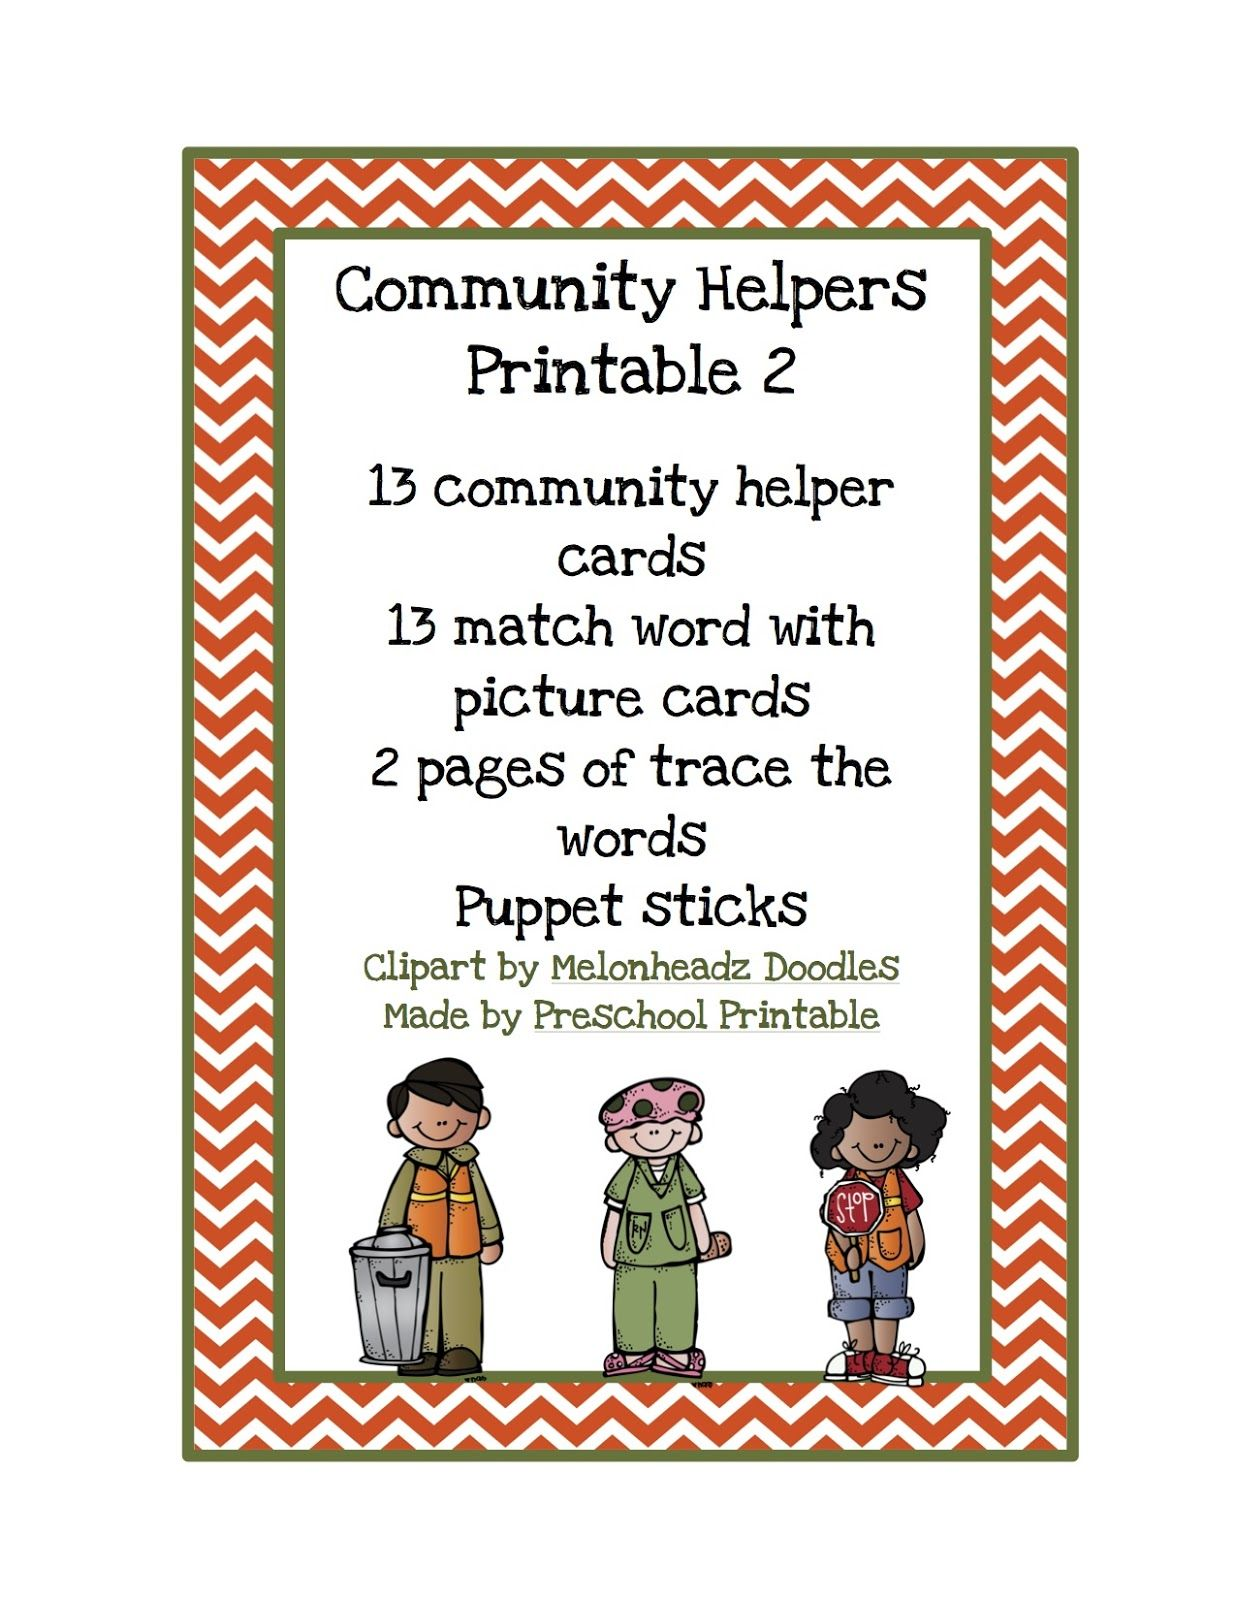 Community Helpers Printable